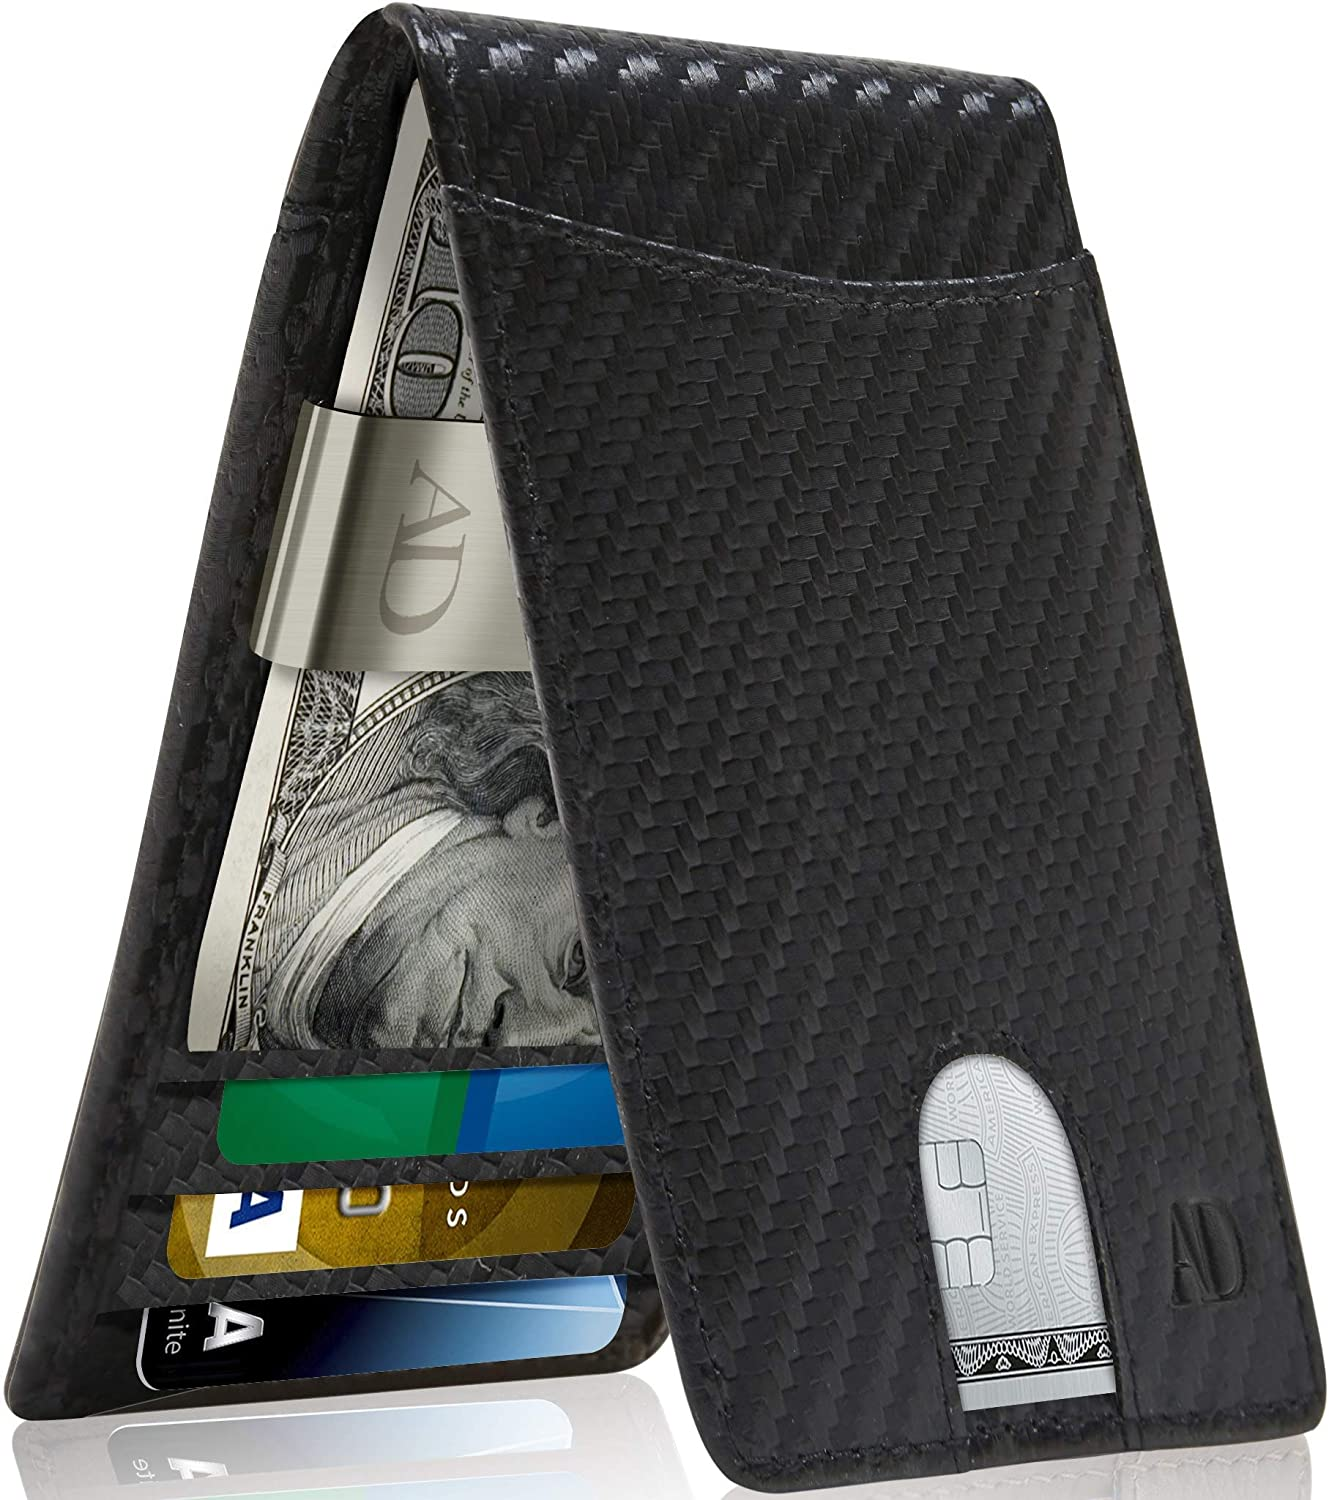 Real New mail order Leather Wallets For Men - Department store Wallet Money Clip RFID Bifold Fro